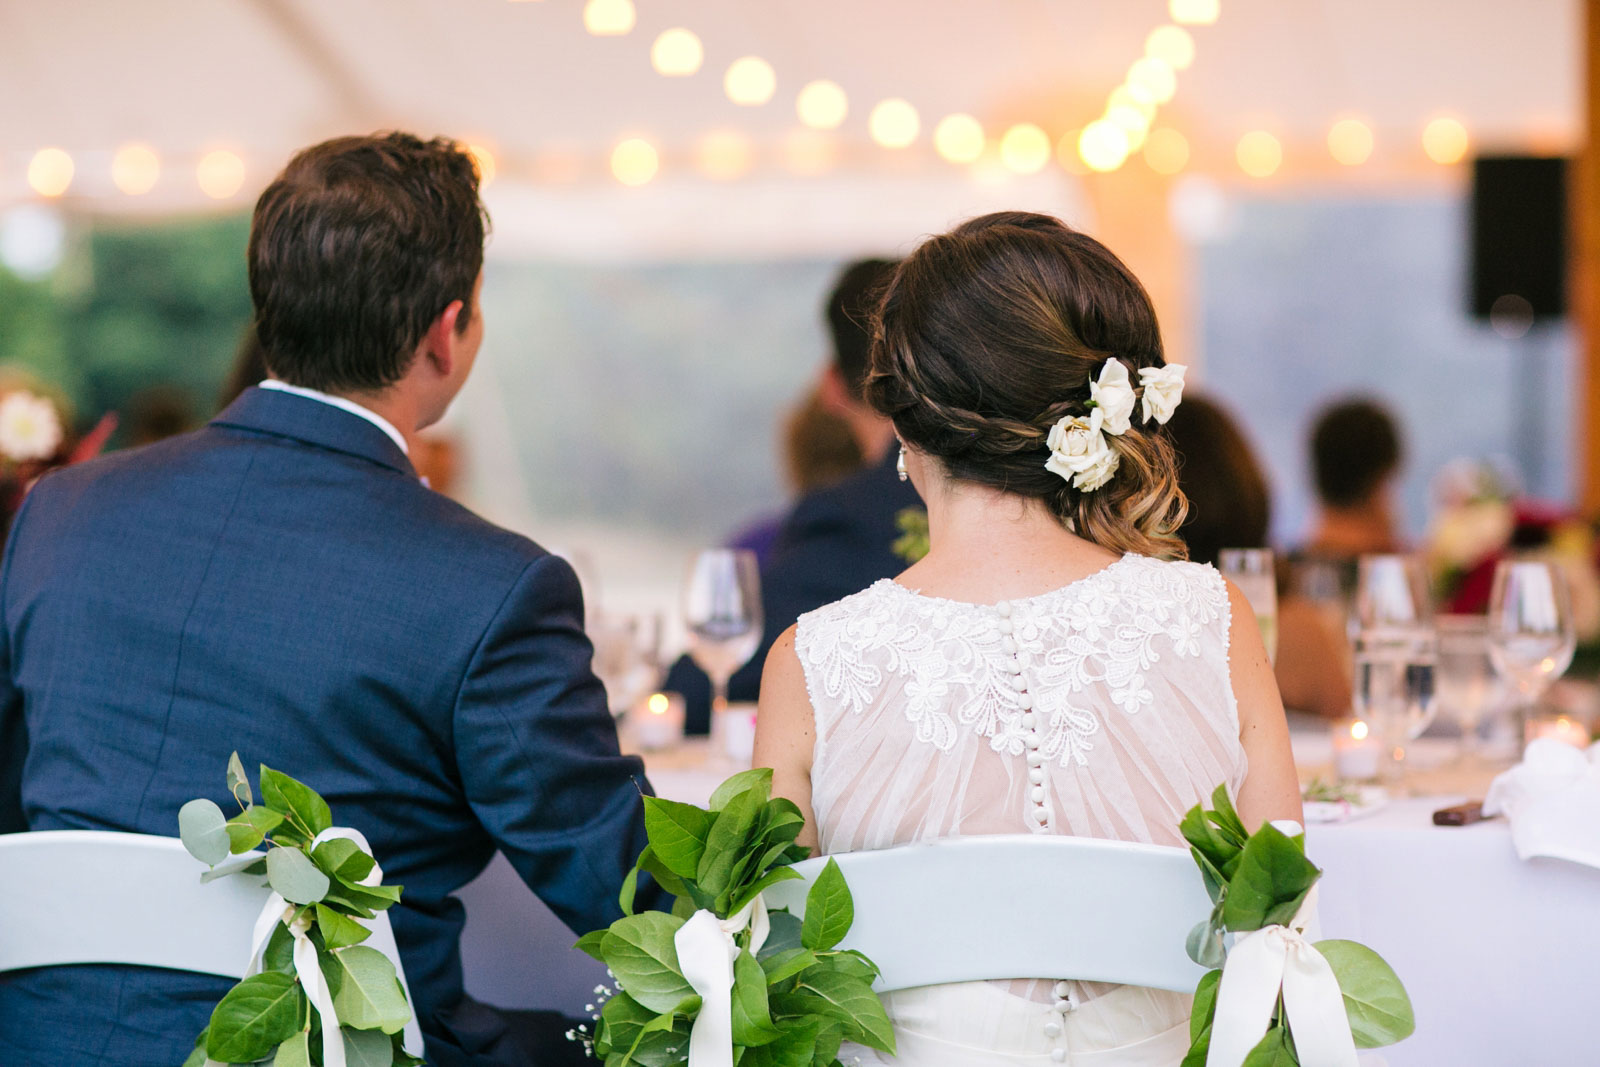 Bride and groom from behind listening to toasts at wedding reception under tent with string lights.